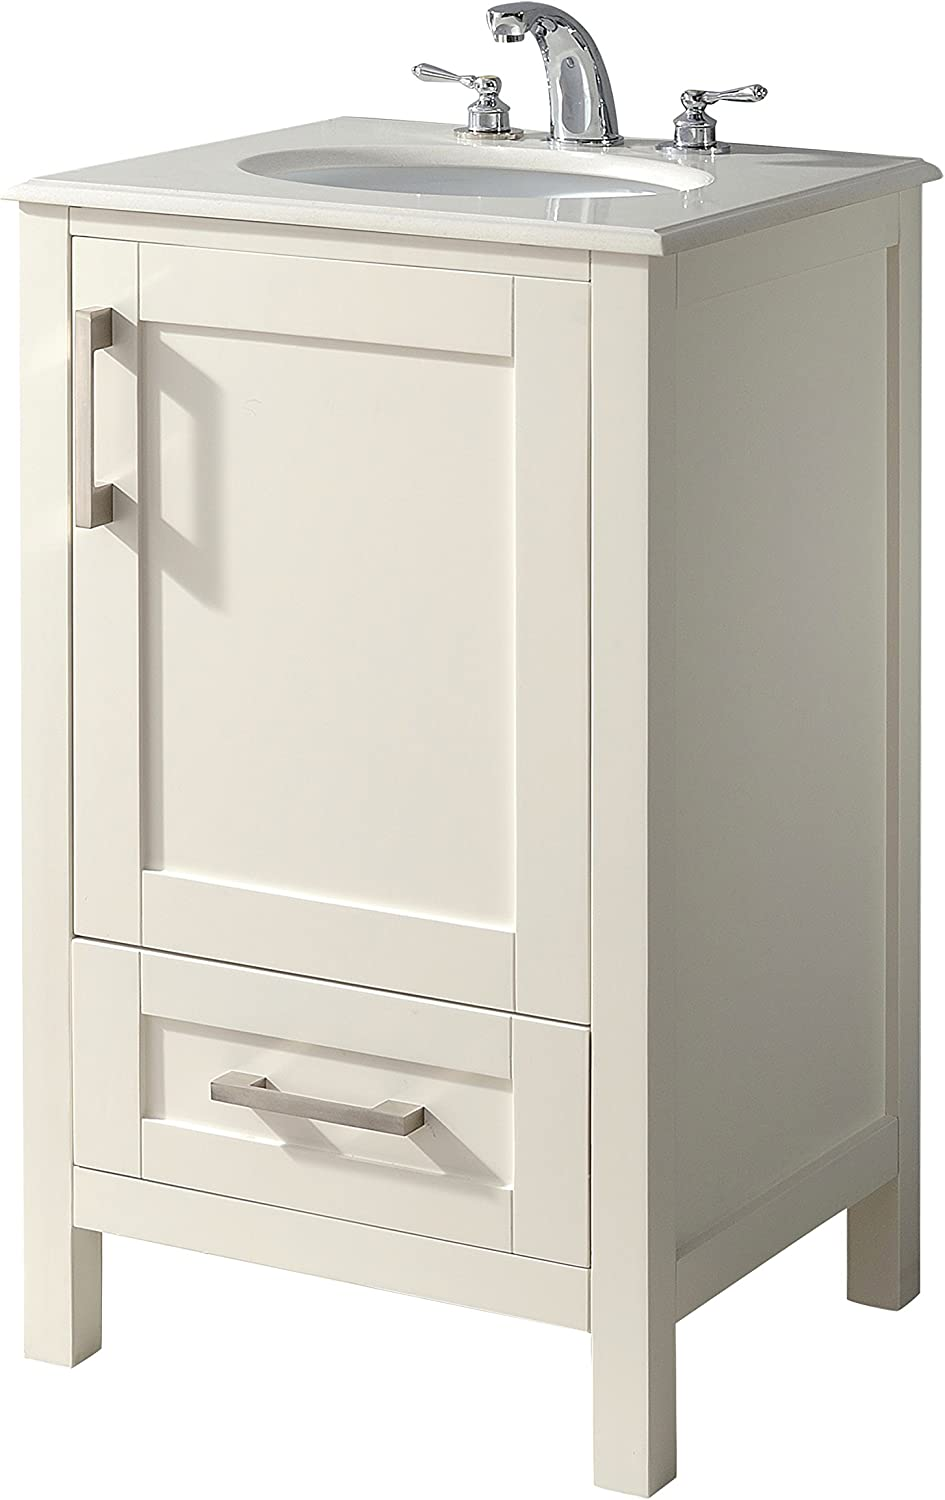 SIMPLIHOME Westbridge 20 inch Contemporary Bath Vanity in Soft White with Bombay White Engineered Quartz Marble Top